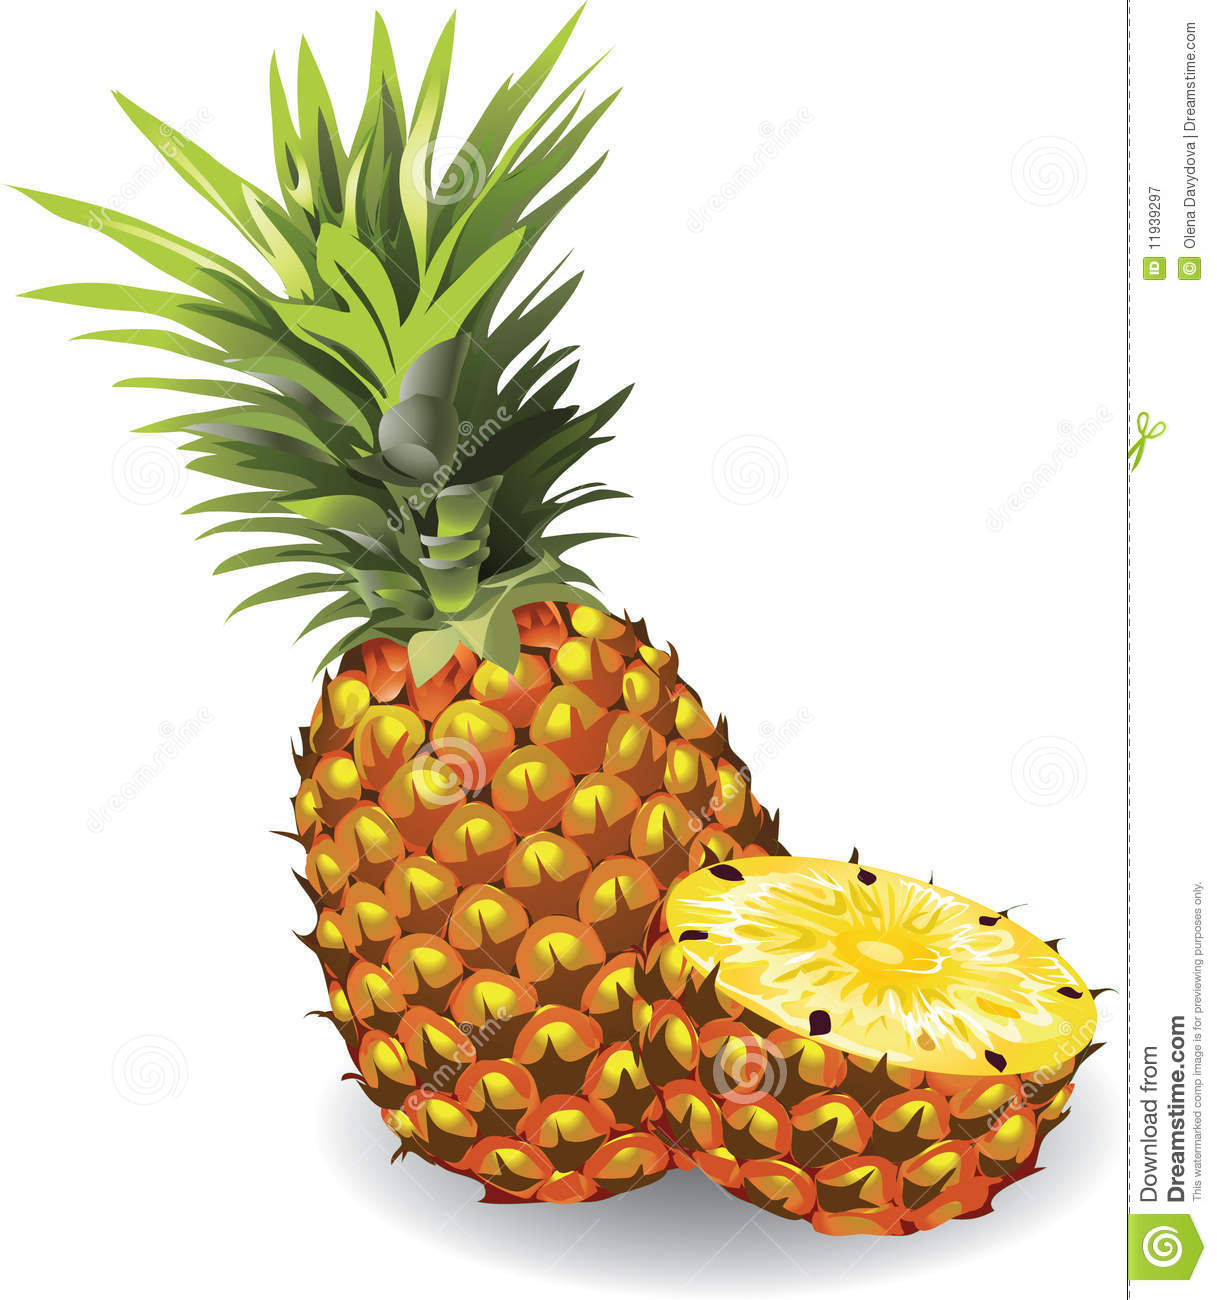 14 Free Pineapple Vector Graphic Design Images - Pineapple ...